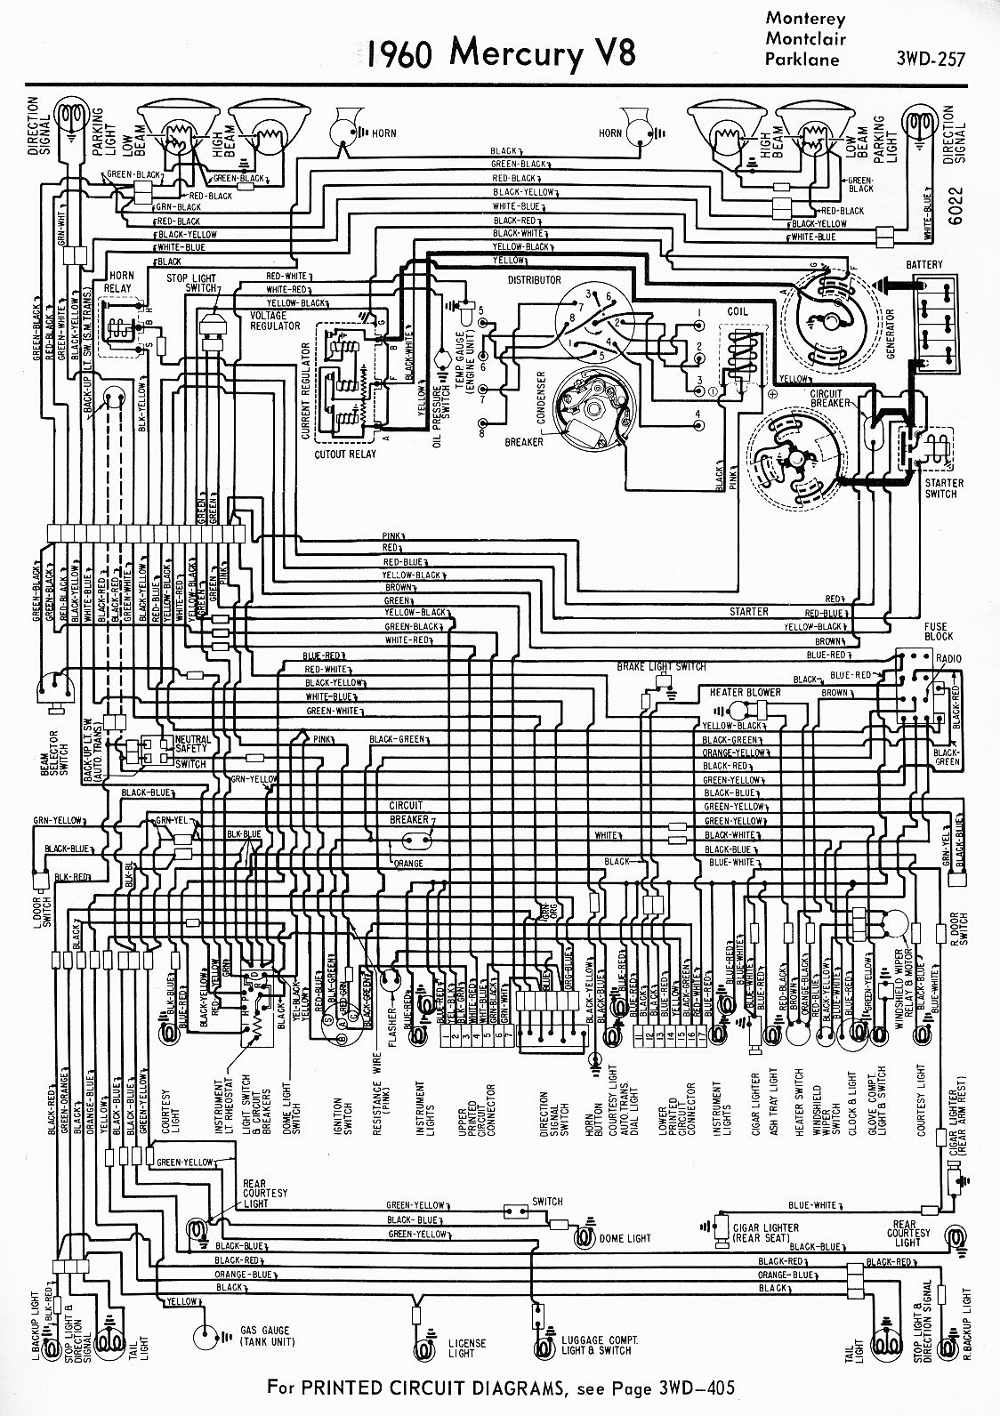 wiring diagrams 911 december 2011 rh wiringdiagrams911 blogspot com Basic Boat Wiring Diagram Boat Instrument Panel Wiring Diagrams